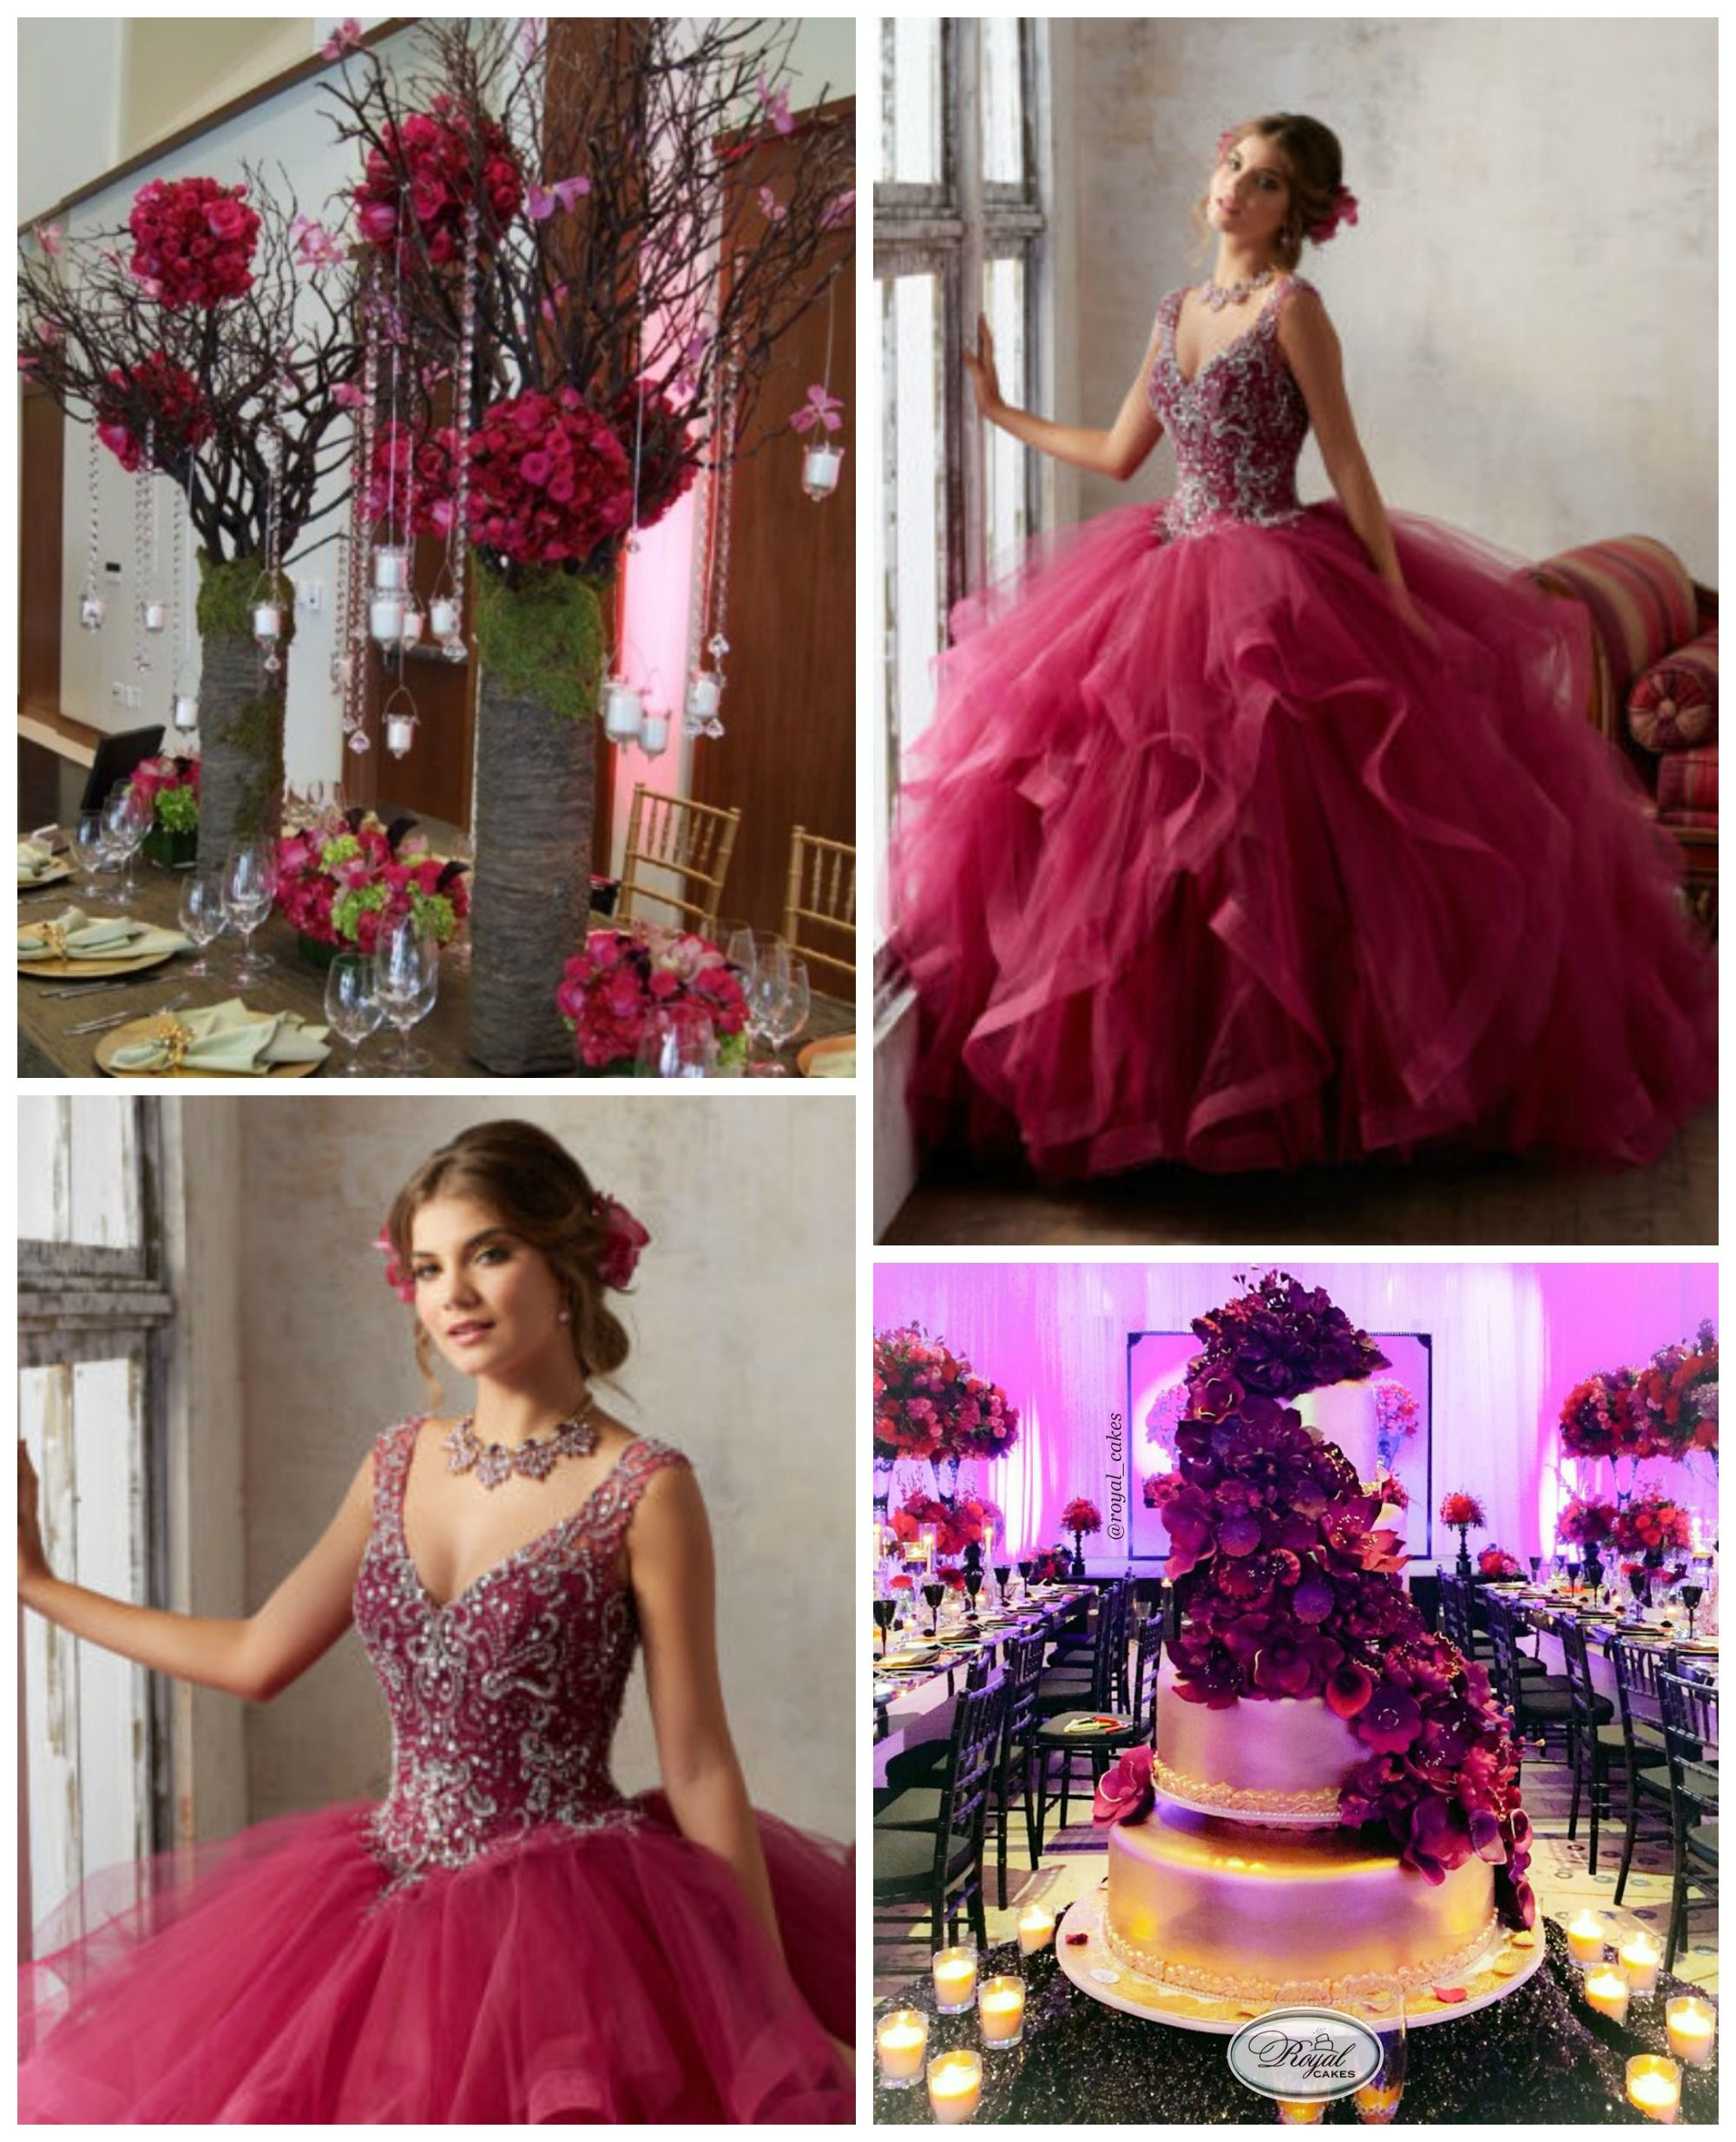 Quince Theme Decorations in 2018 | QUINCE | Pinterest ...